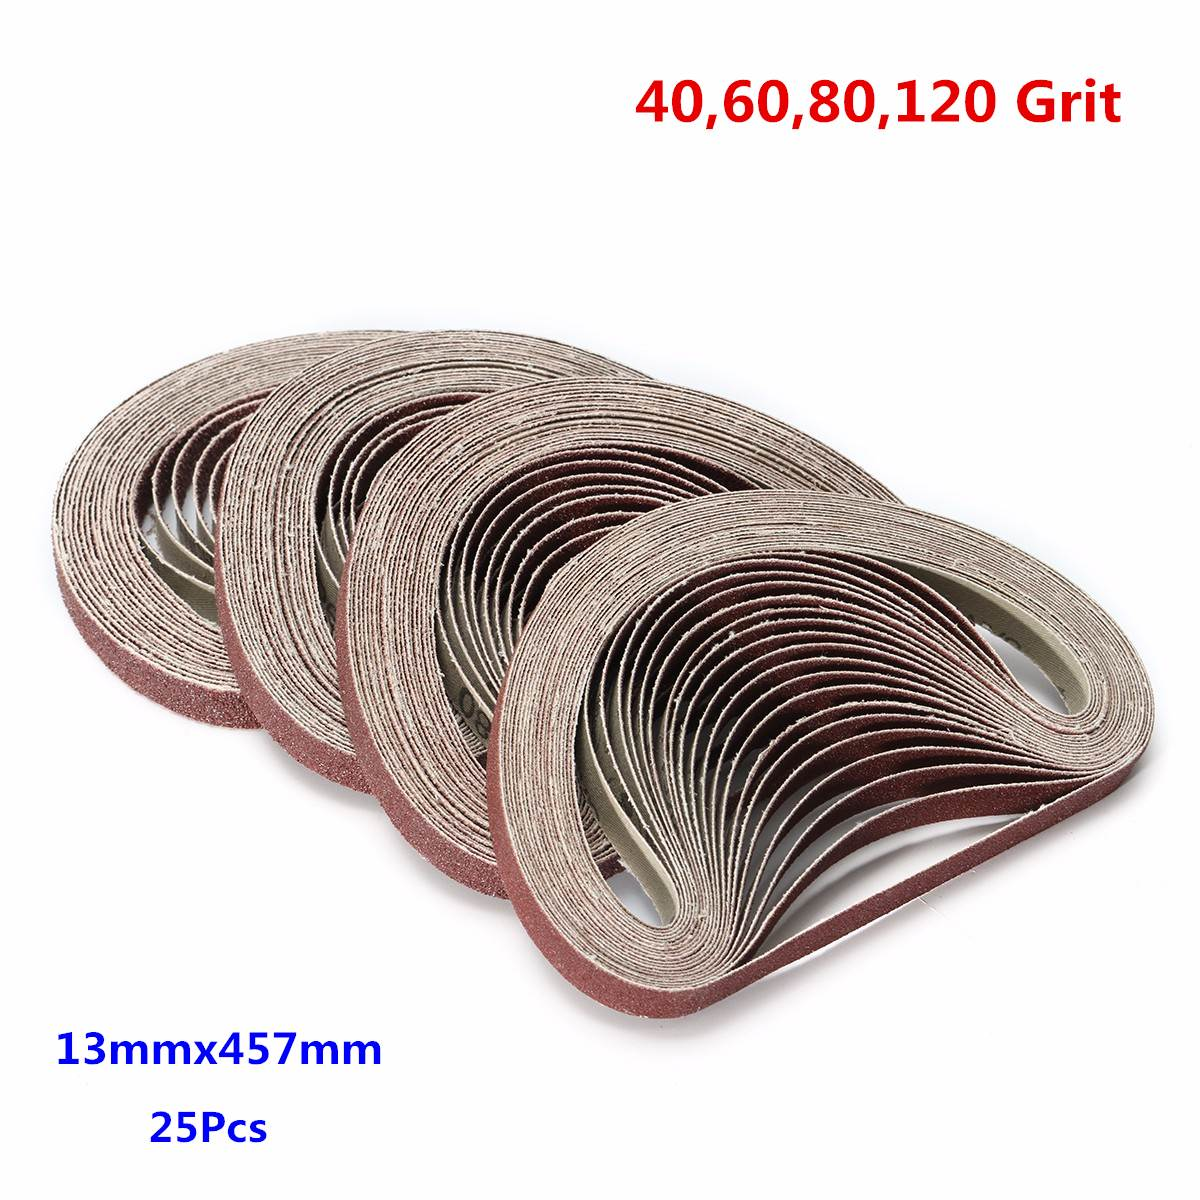 25Pcs Sanding Belts 13x457mm 40/60/80/120 Grit  For Power File Powerfile Sander For Grinding Polishing Sander Tools